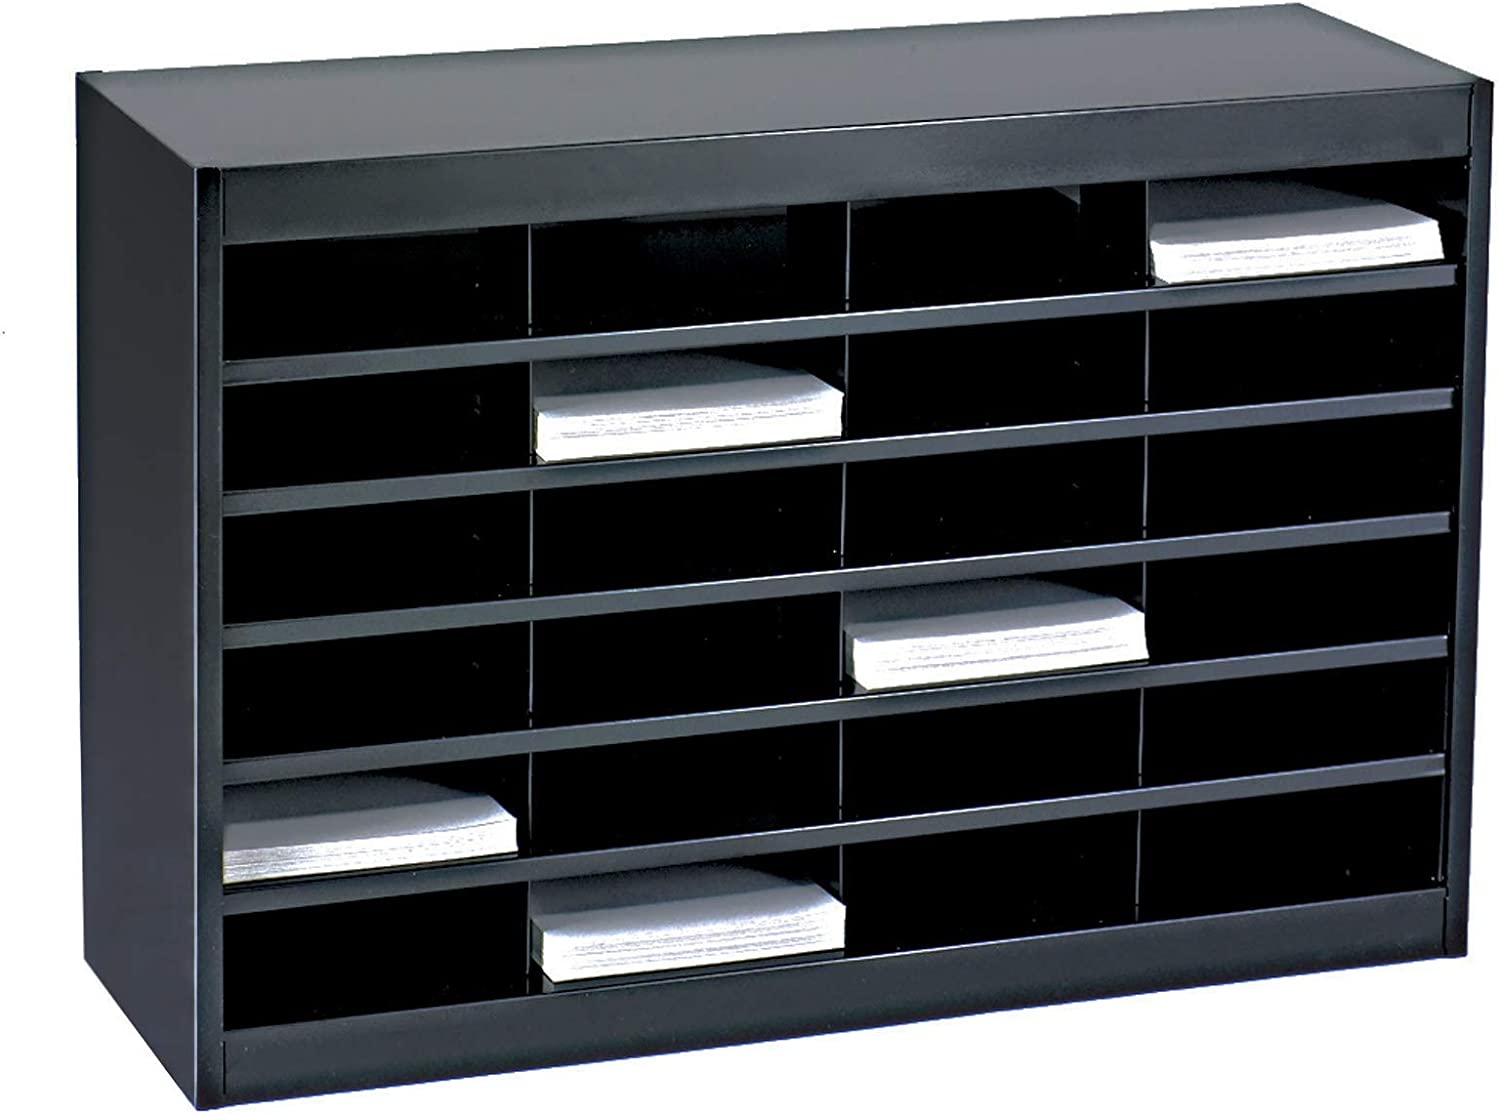 Safco Products E-Z Stor Literature Organizer, 24 Compartment, 9211BLR, Black Powder Coat Finish, Commercial-Grade Steel Construction, Eco-Friendly